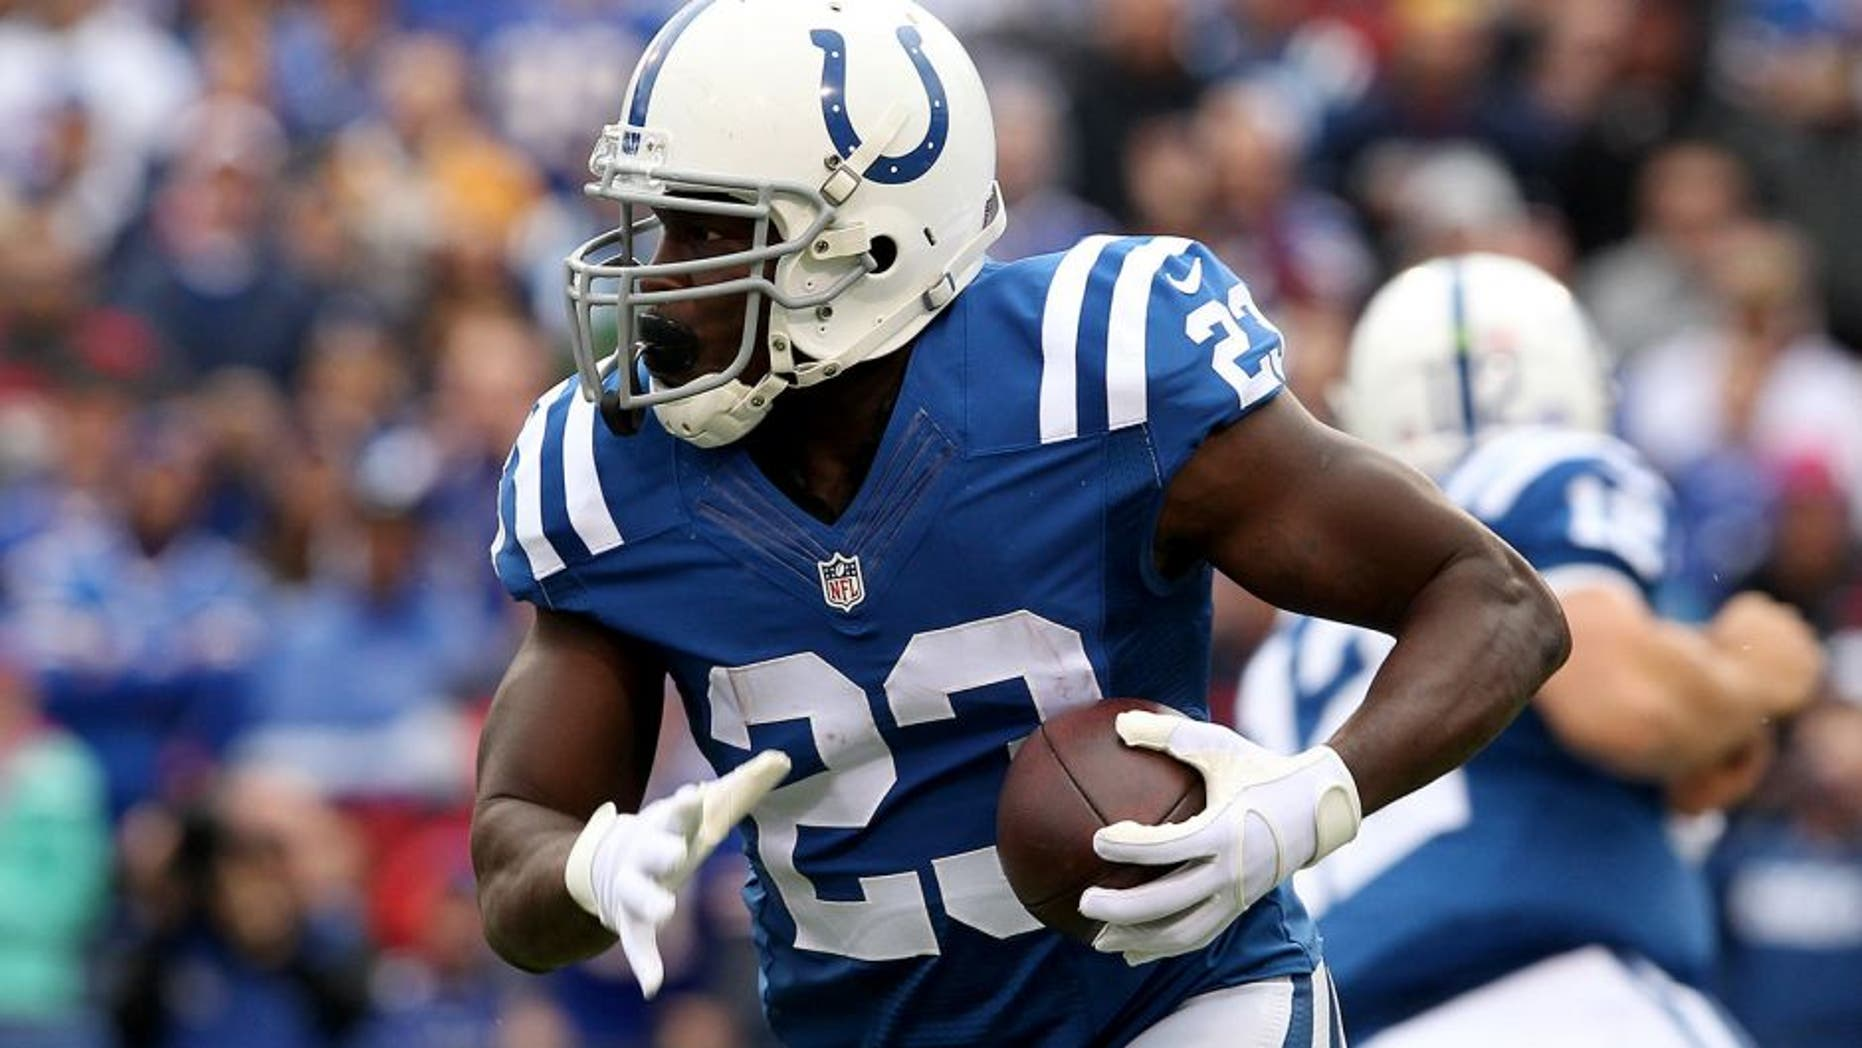 Sep 13, 2015; Orchard Park, NY, USA; Indianapolis Colts running back Frank Gore (23) runs the ball during the first half against the Buffalo Bills at Ralph Wilson Stadium. Mandatory Credit: Timothy T. Ludwig-USA TODAY Sports